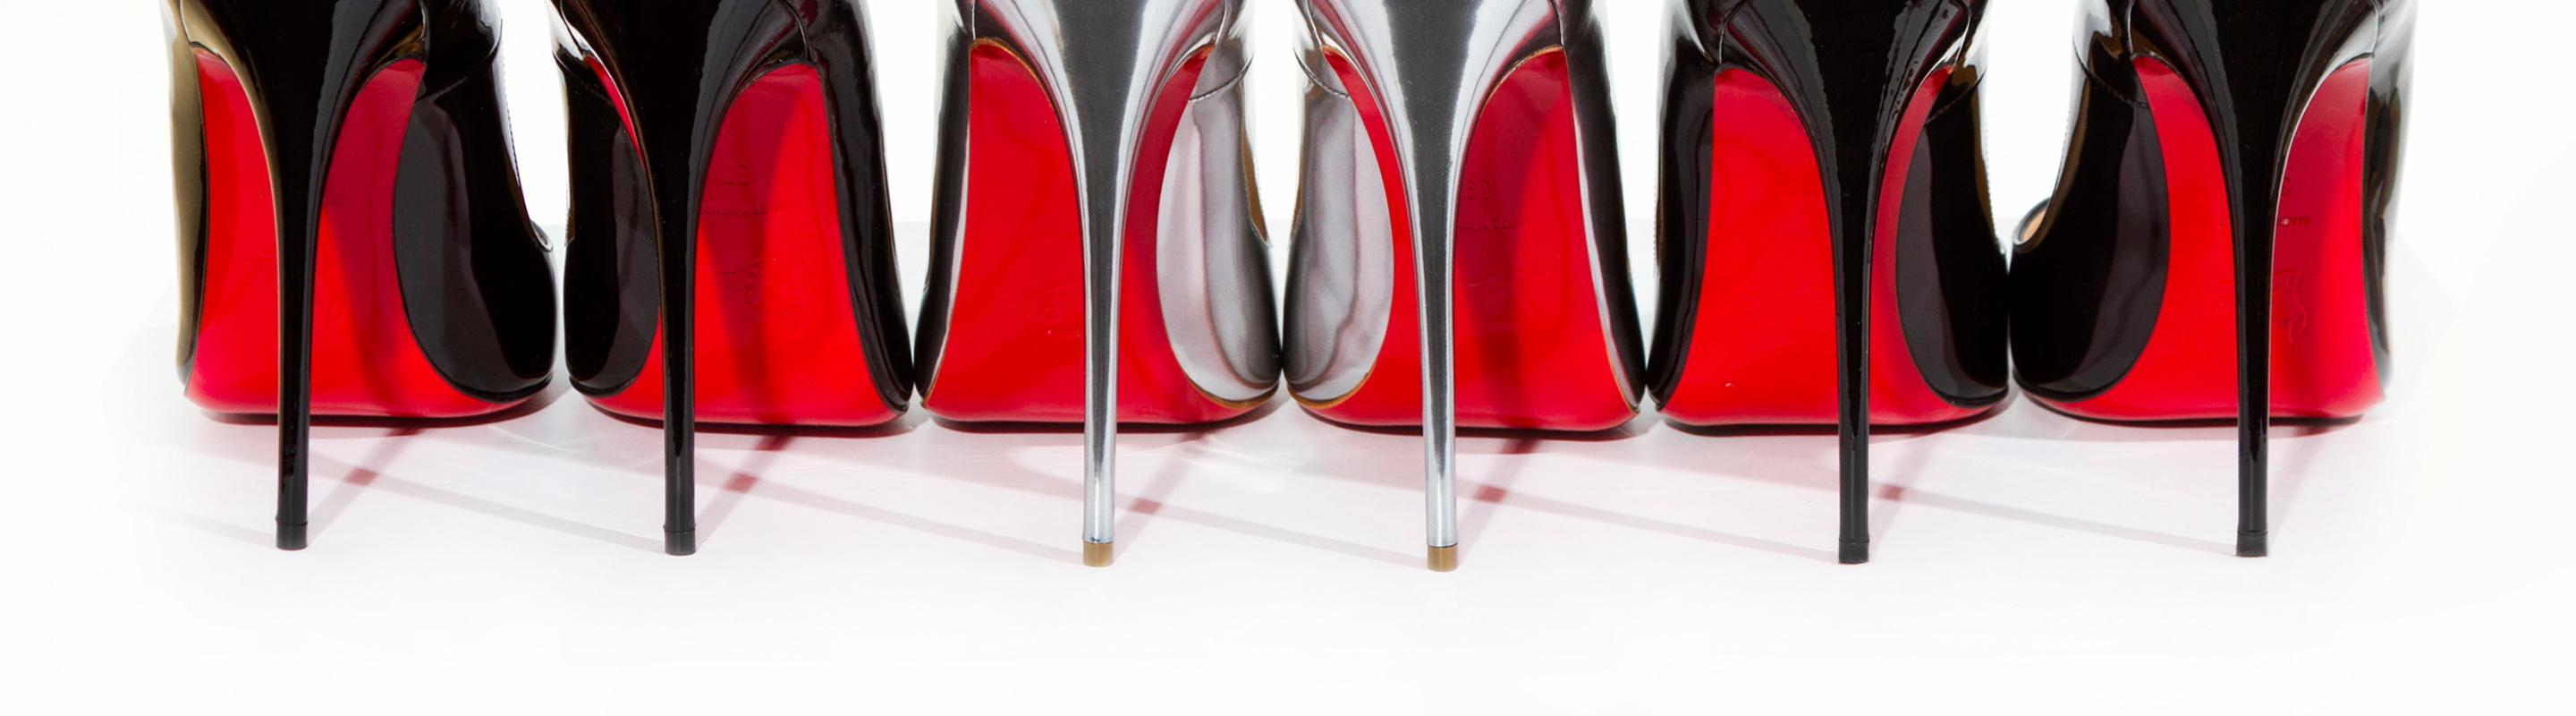 Christian Louboutin Christian Louboutin. Created in 1993, Christian  Louboutin\u0027s signature red-bottom heels ...